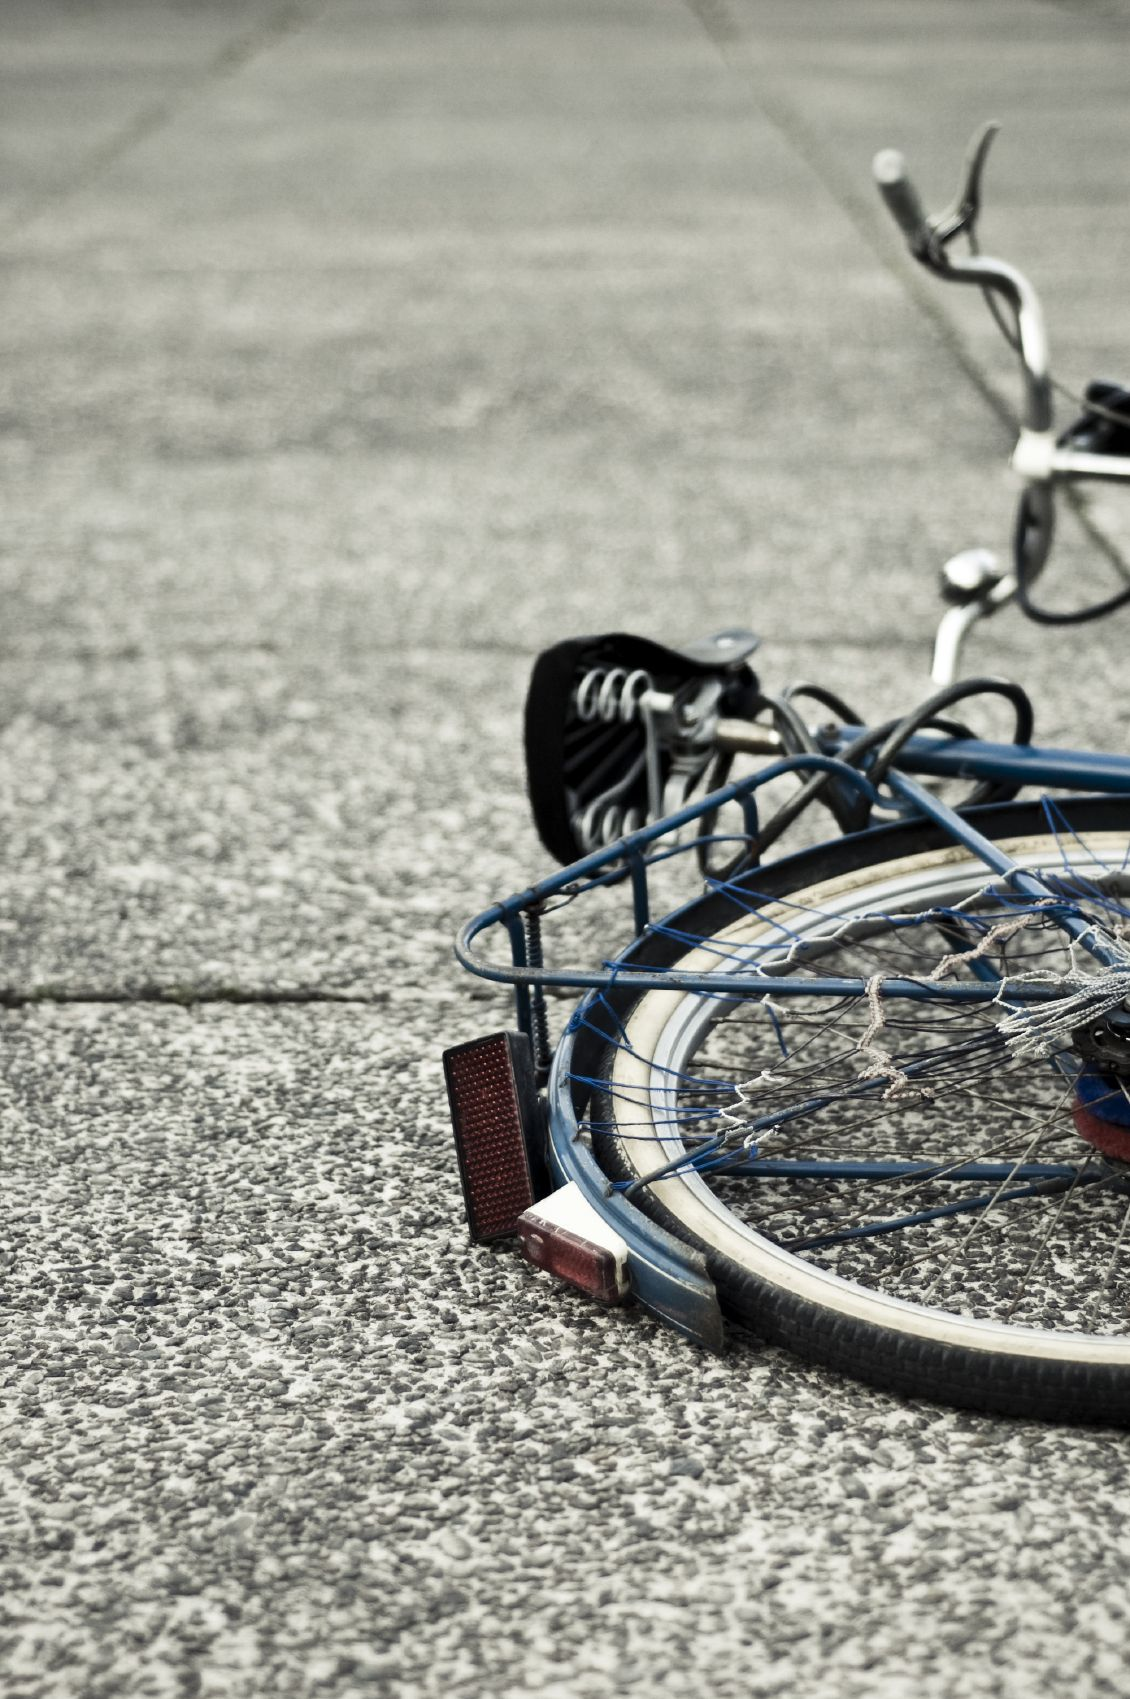 Common Bicycle Injuries